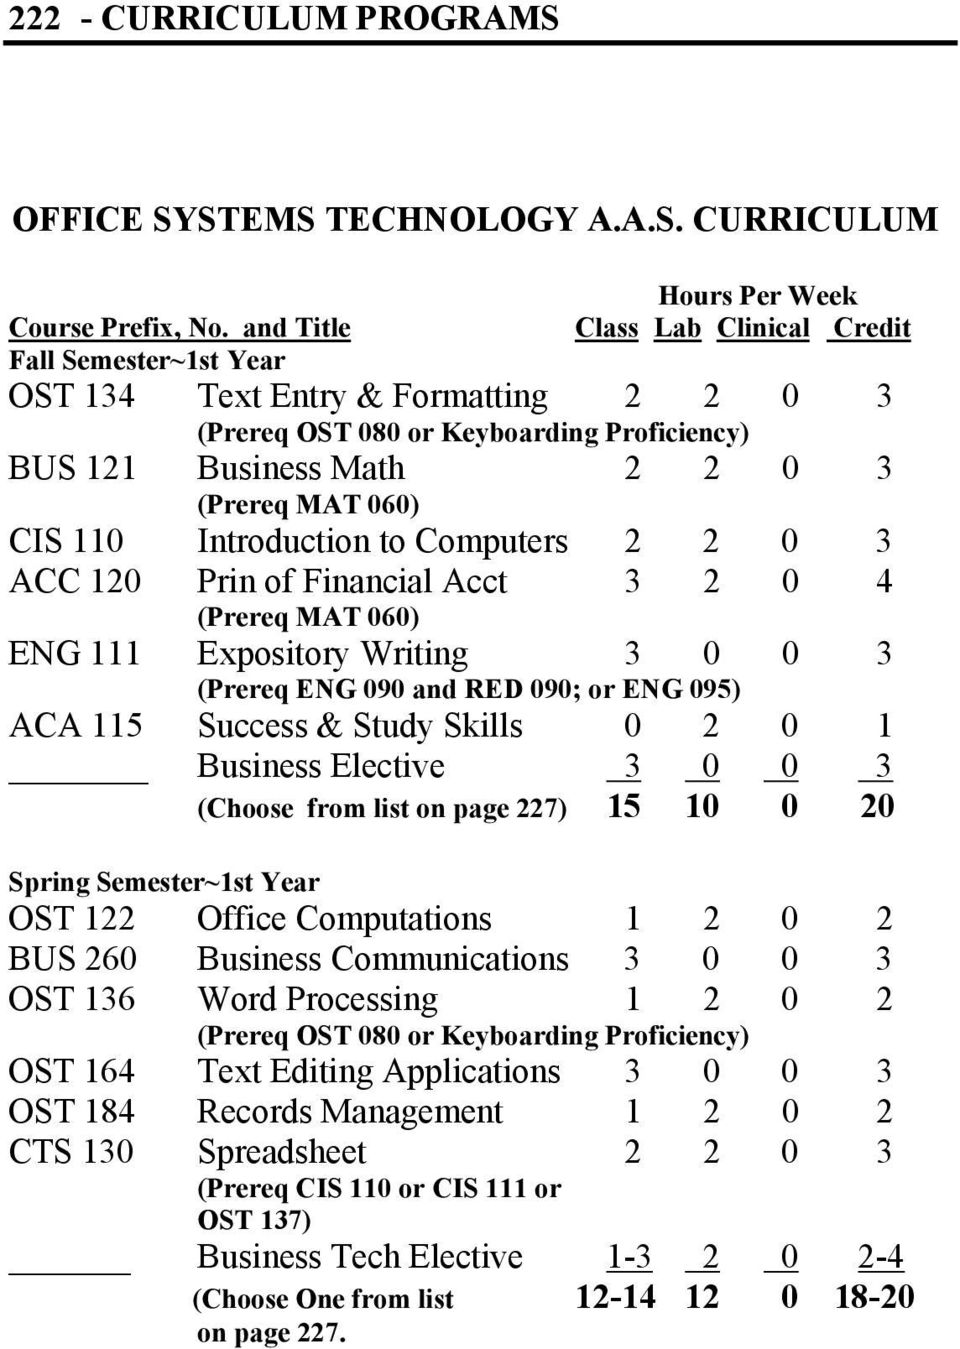 060) CIS 110 Introduction to Computers 2 2 0 3 ACC 120 Prin of Financial Acct 3 2 0 4 (Prereq MAT 060) ENG 111 Expository Writing 3 0 0 3 (Prereq ENG 090 and RED 090; or ENG 095) ACA 115 Success &